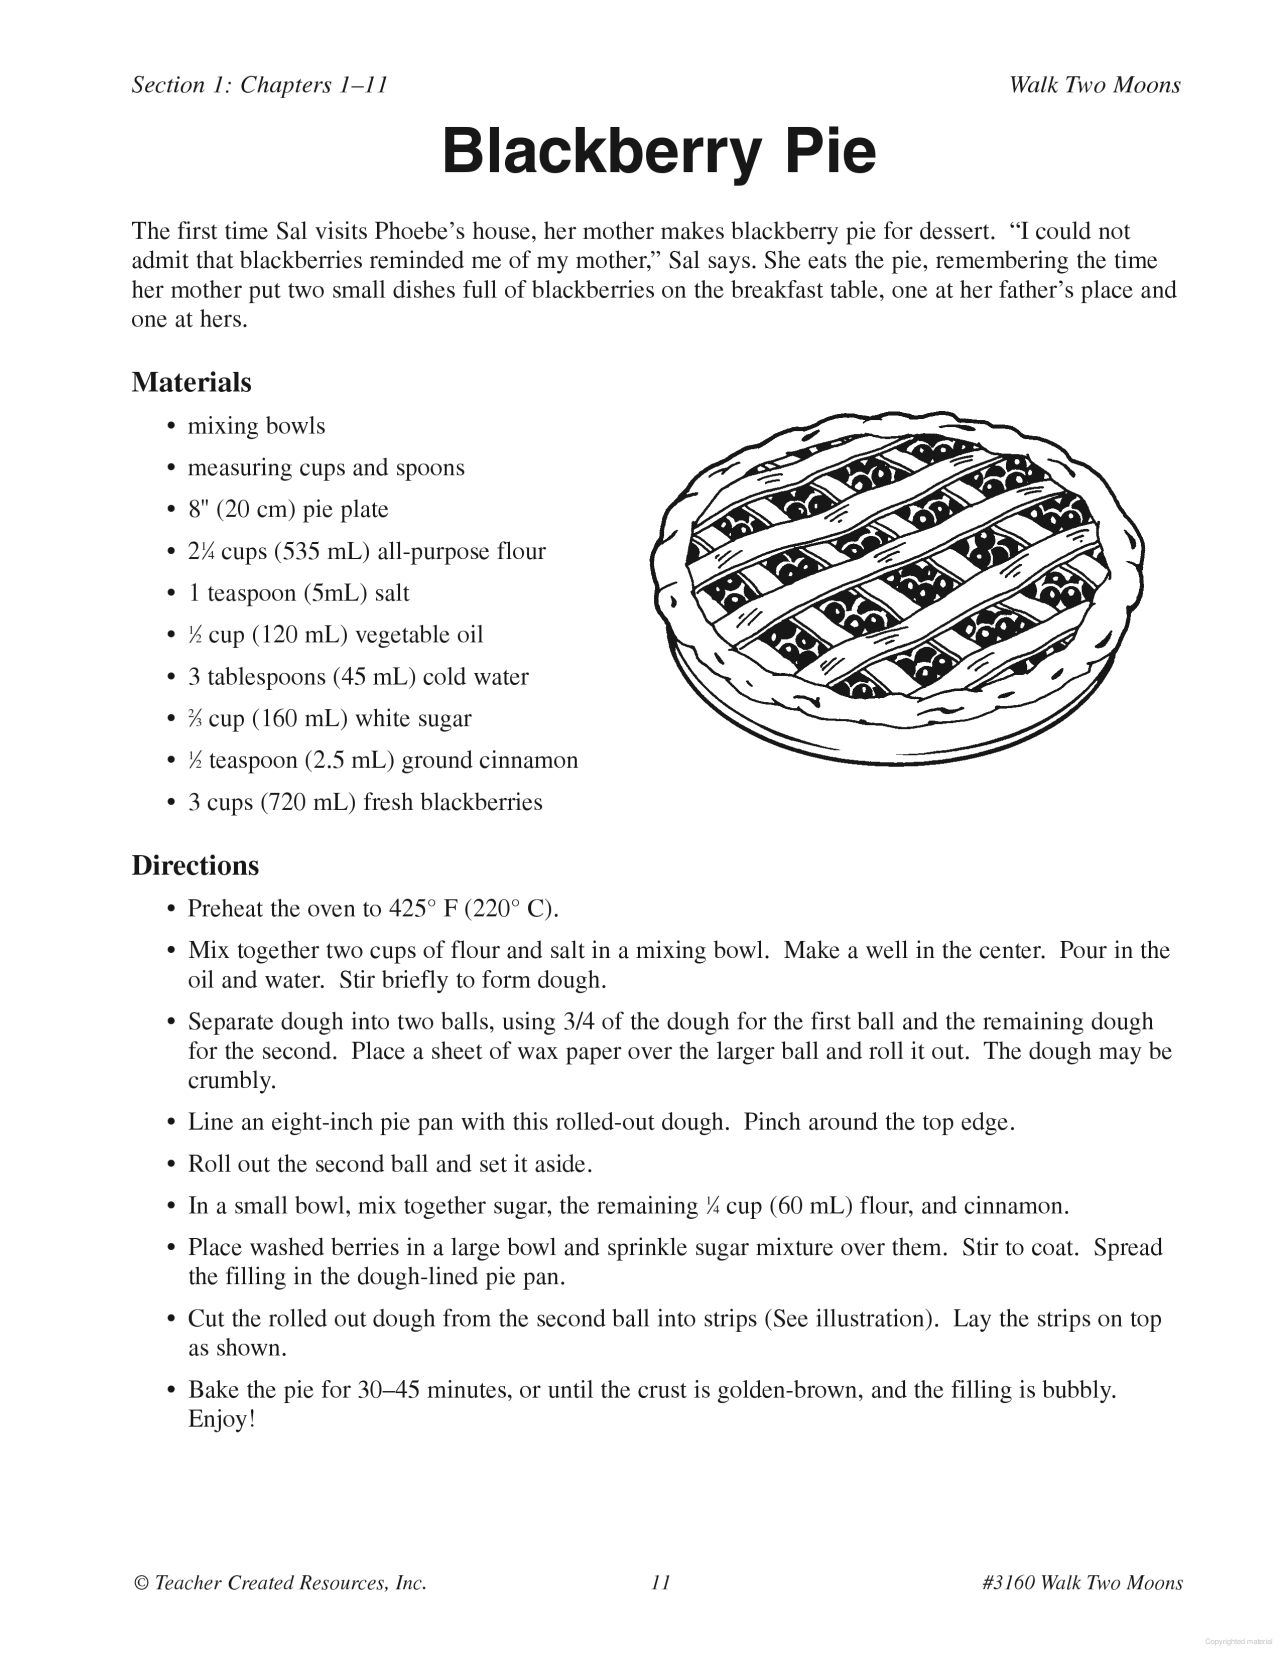 A Guide For Using Walk Two Moon In The Classroom Vocabulary Building Essay Discussion Question Theme